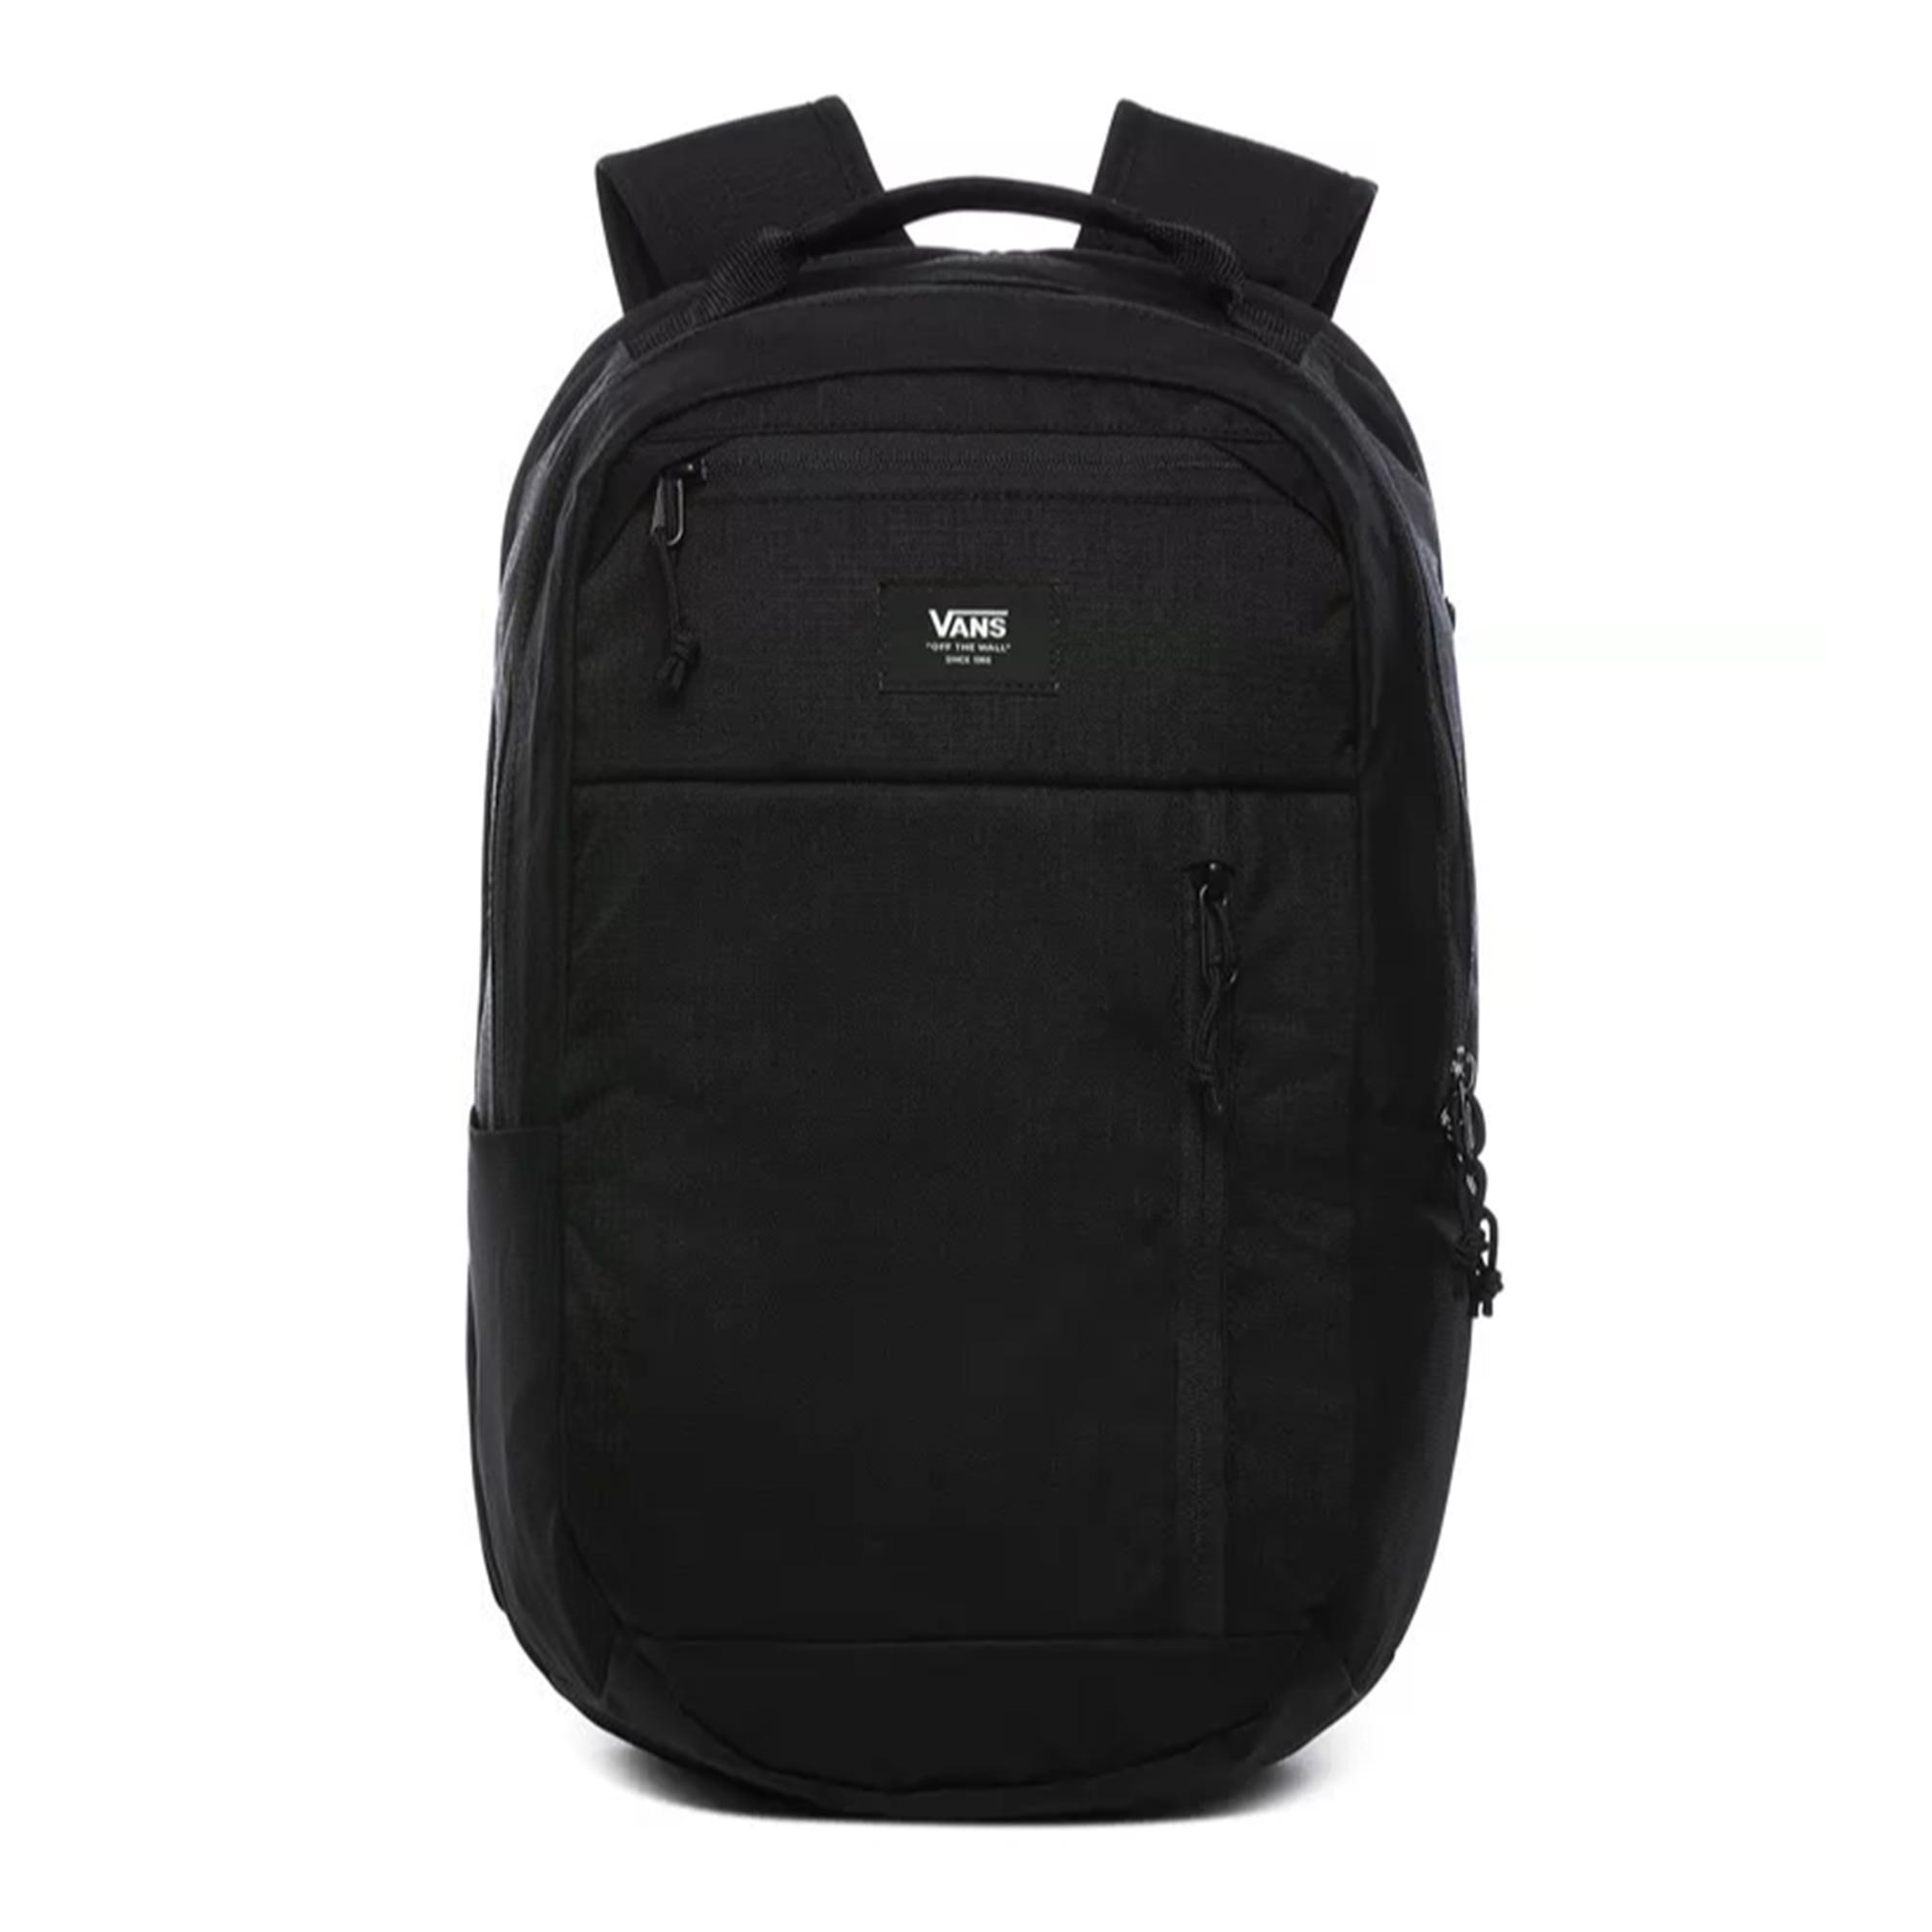 Vans Mn Disorder Plus Backpack Black ripstop